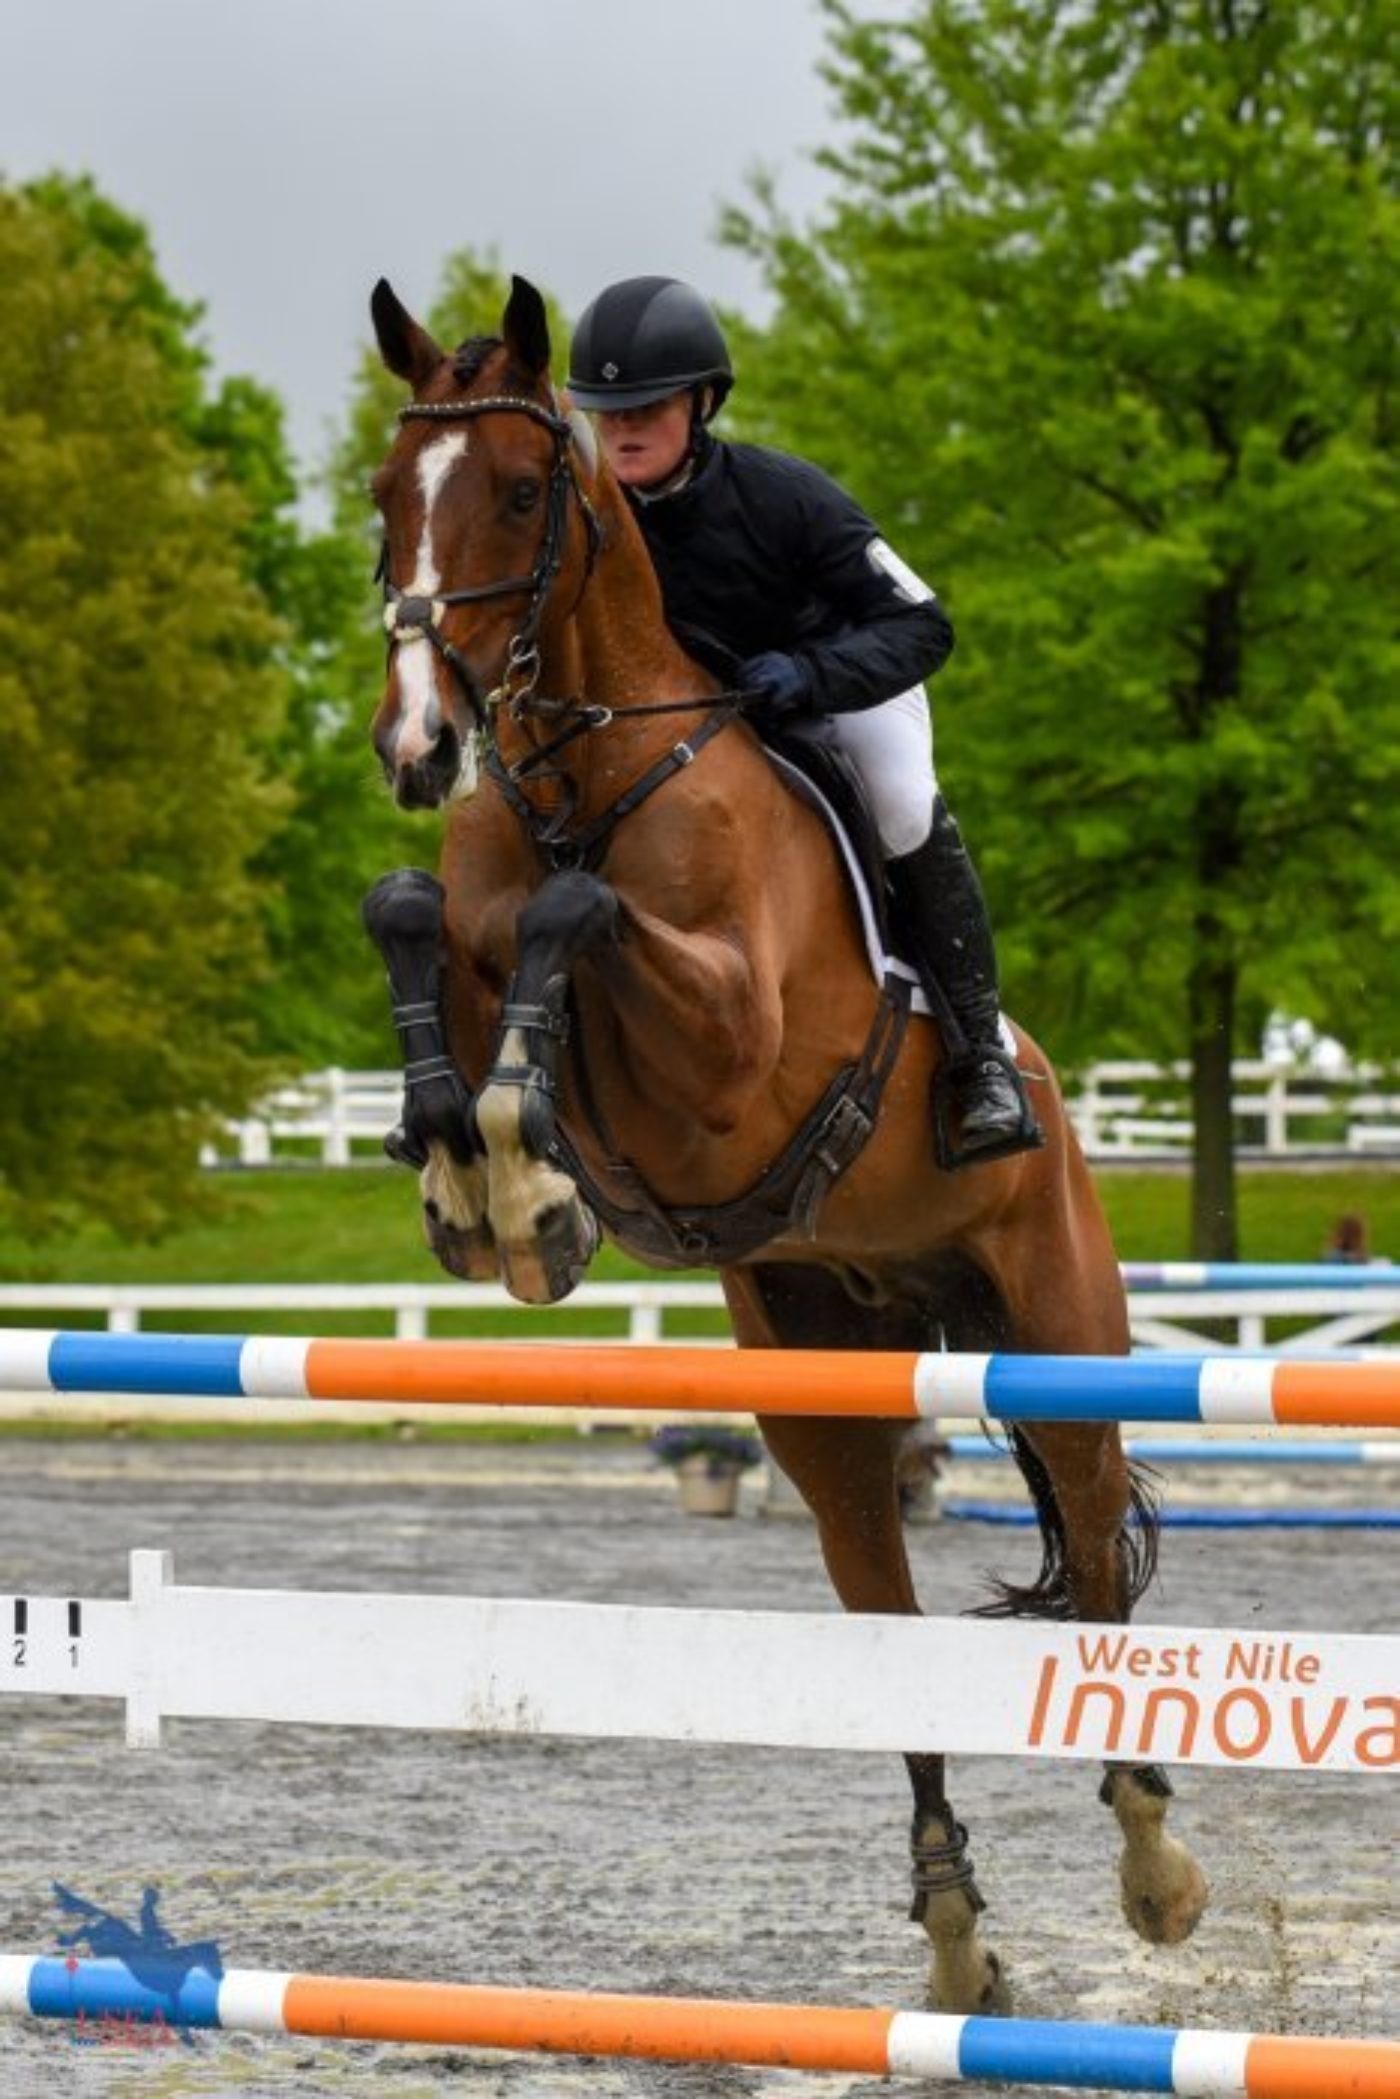 16th - Autumn Schweiss and Oakport Strauss - 82.0